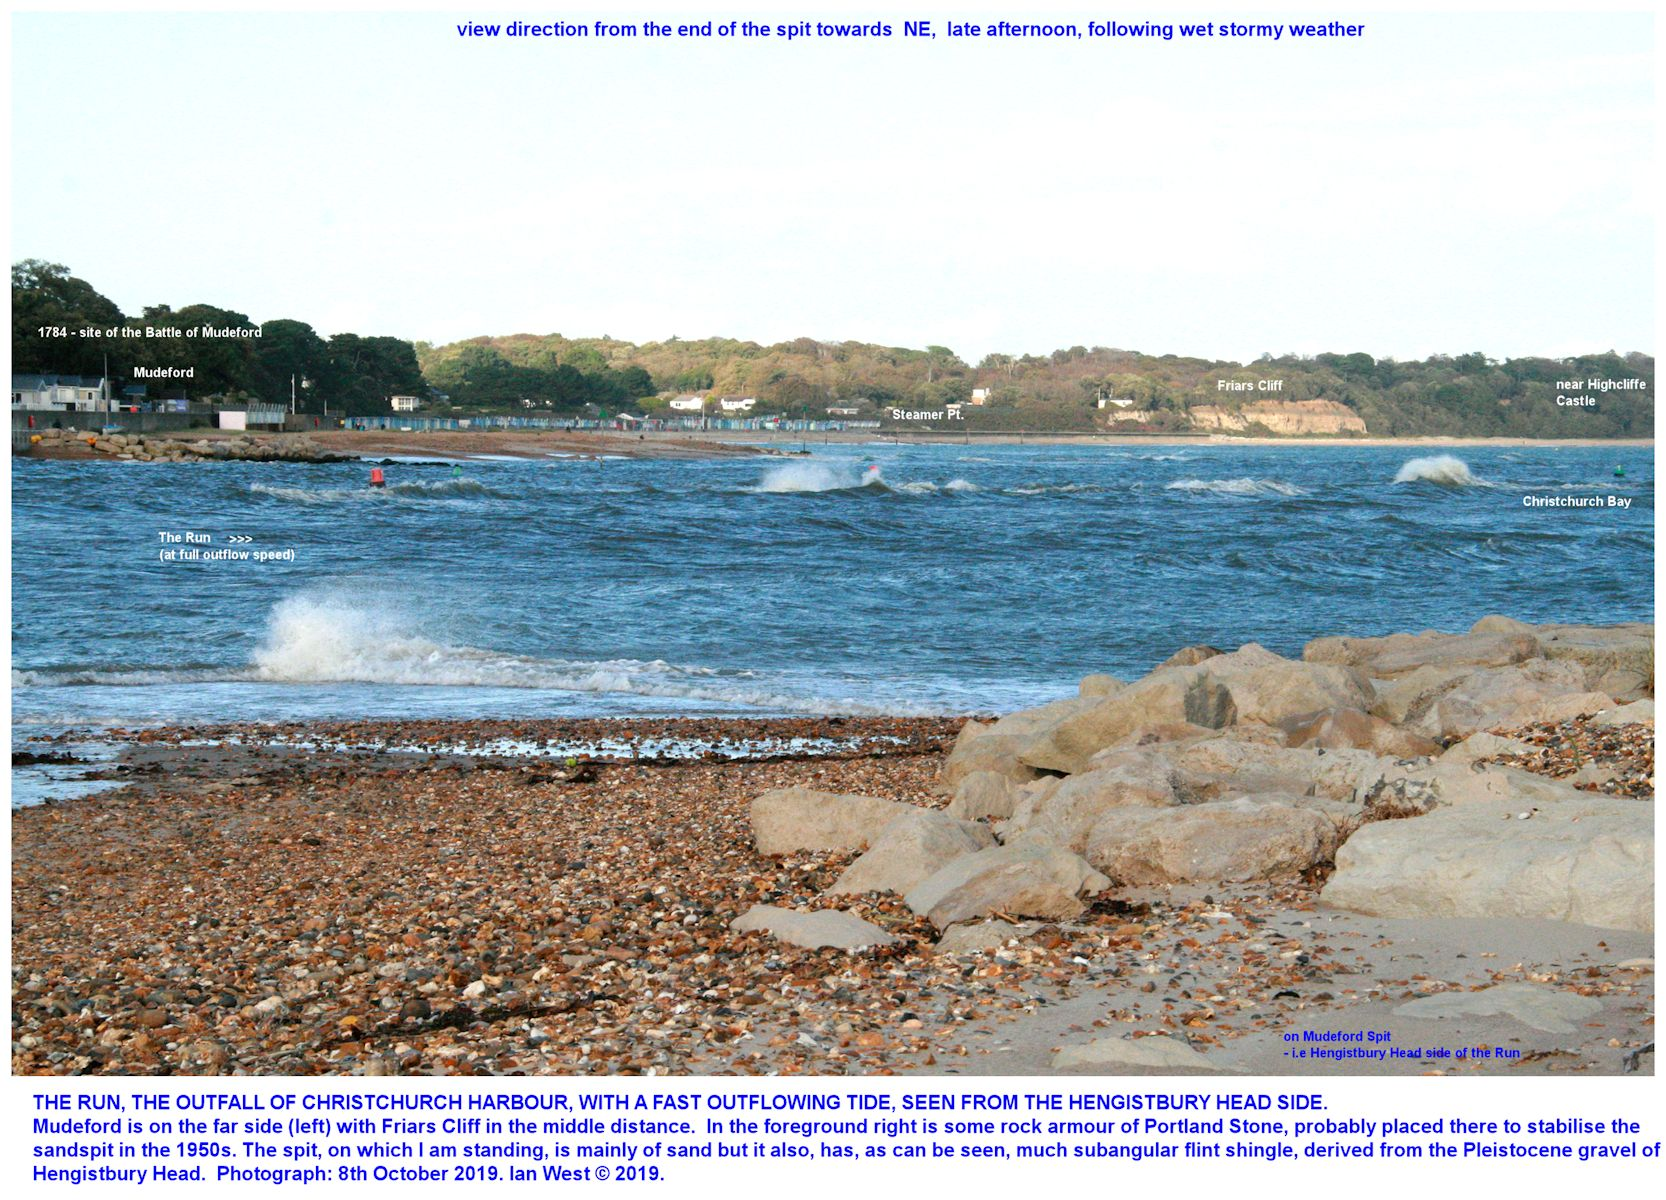 A view of the Run and adjacent coast at Mudeford as seen with an outflowing tide, from the northern, Mudeford, end of Mudeford Spit (i.e the Hengistbury Head sand spit) on the 8th October, 2019